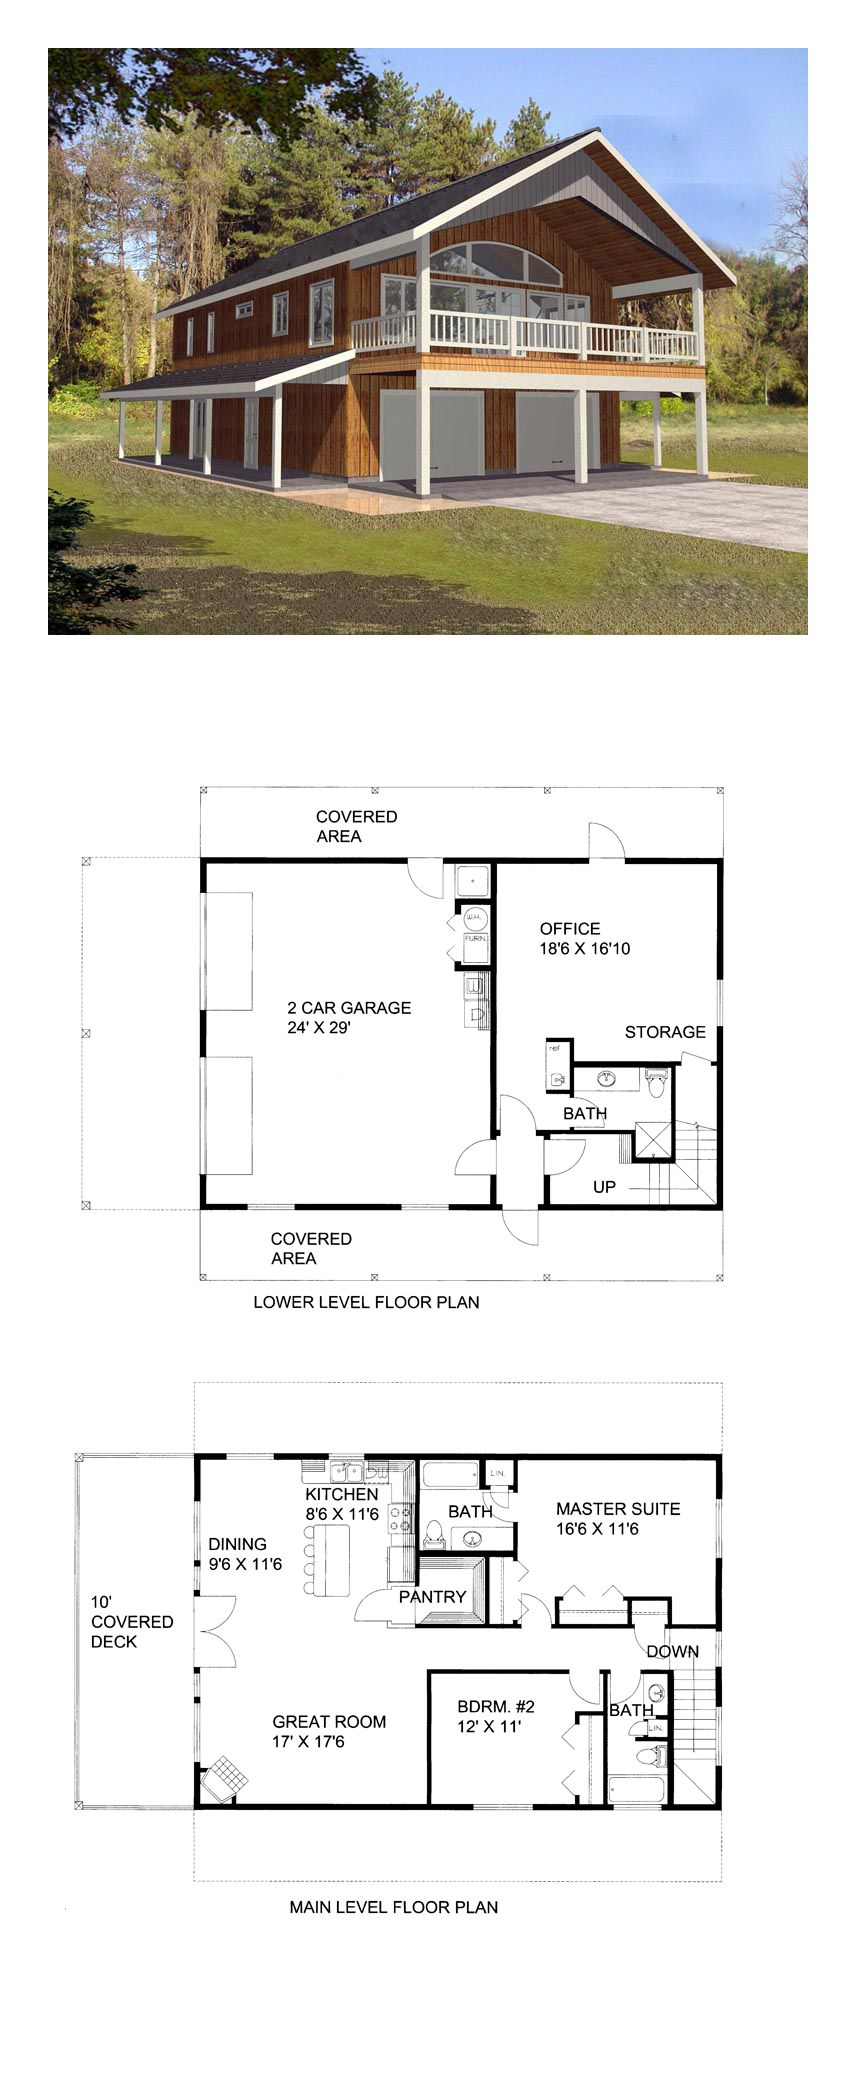 Garage apartment plan 85372 total living area 1901 sq for 2 car garage size square feet